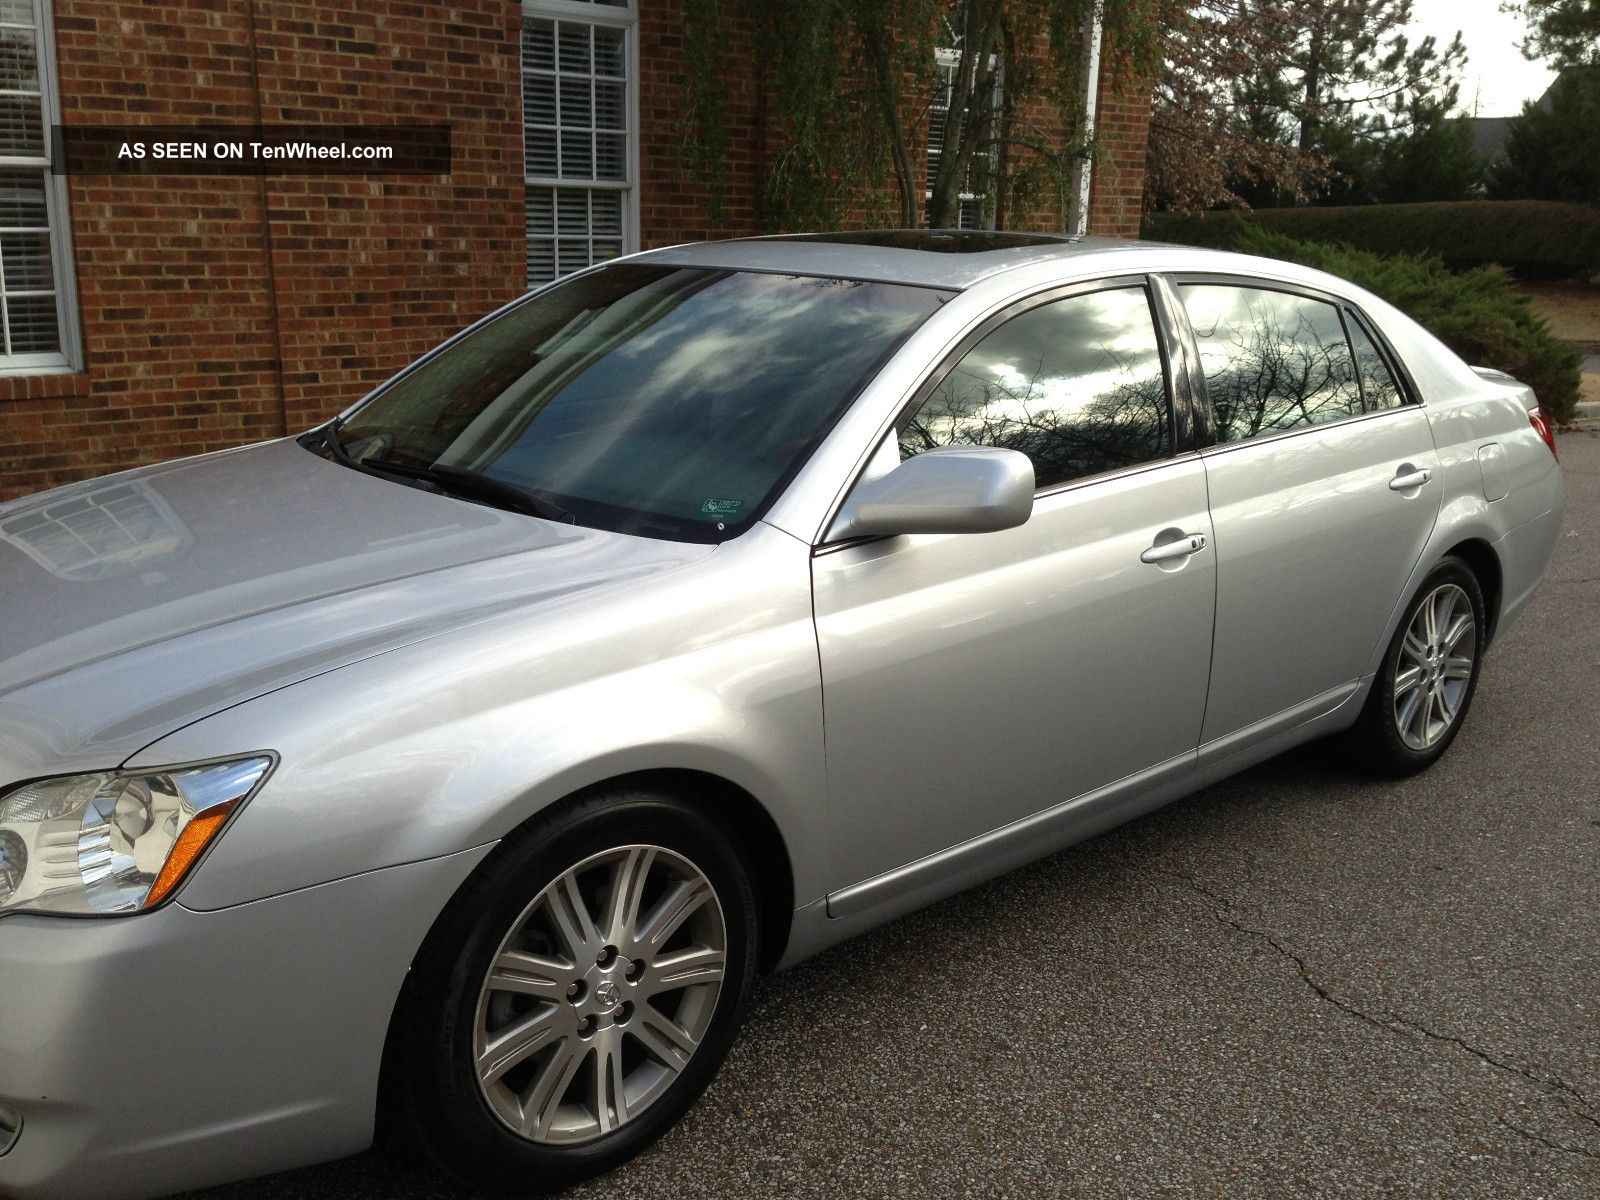 2006 Toyota Avalon Xls Sedan 4 Door 3 5l